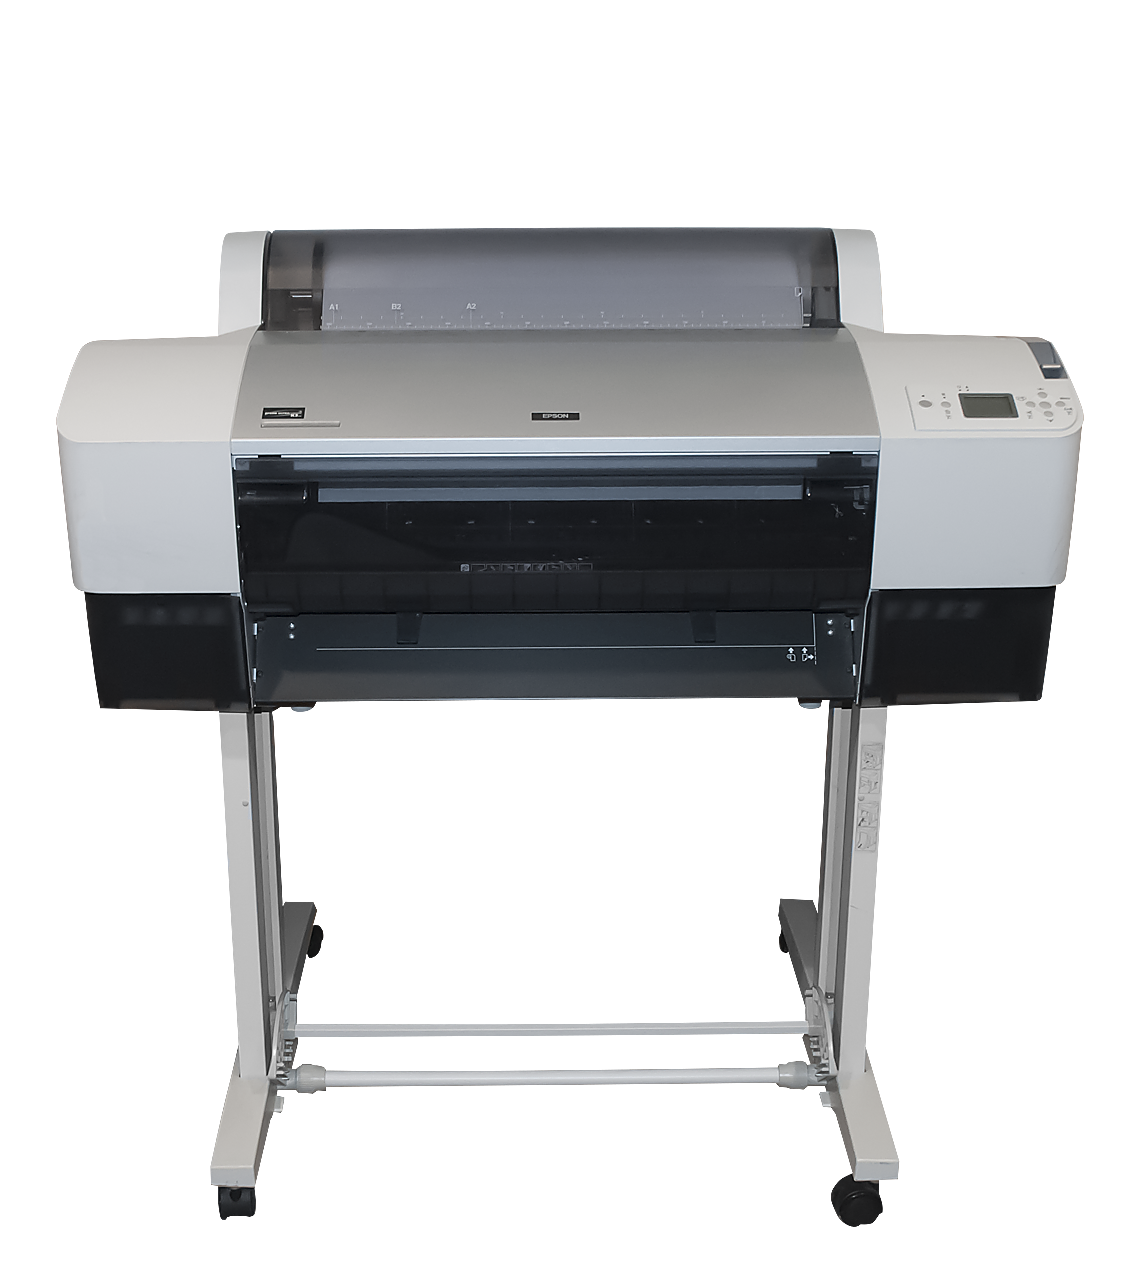 Epson Color Proof printer from Roselle Premedia Service company Controlled Color, Inc.